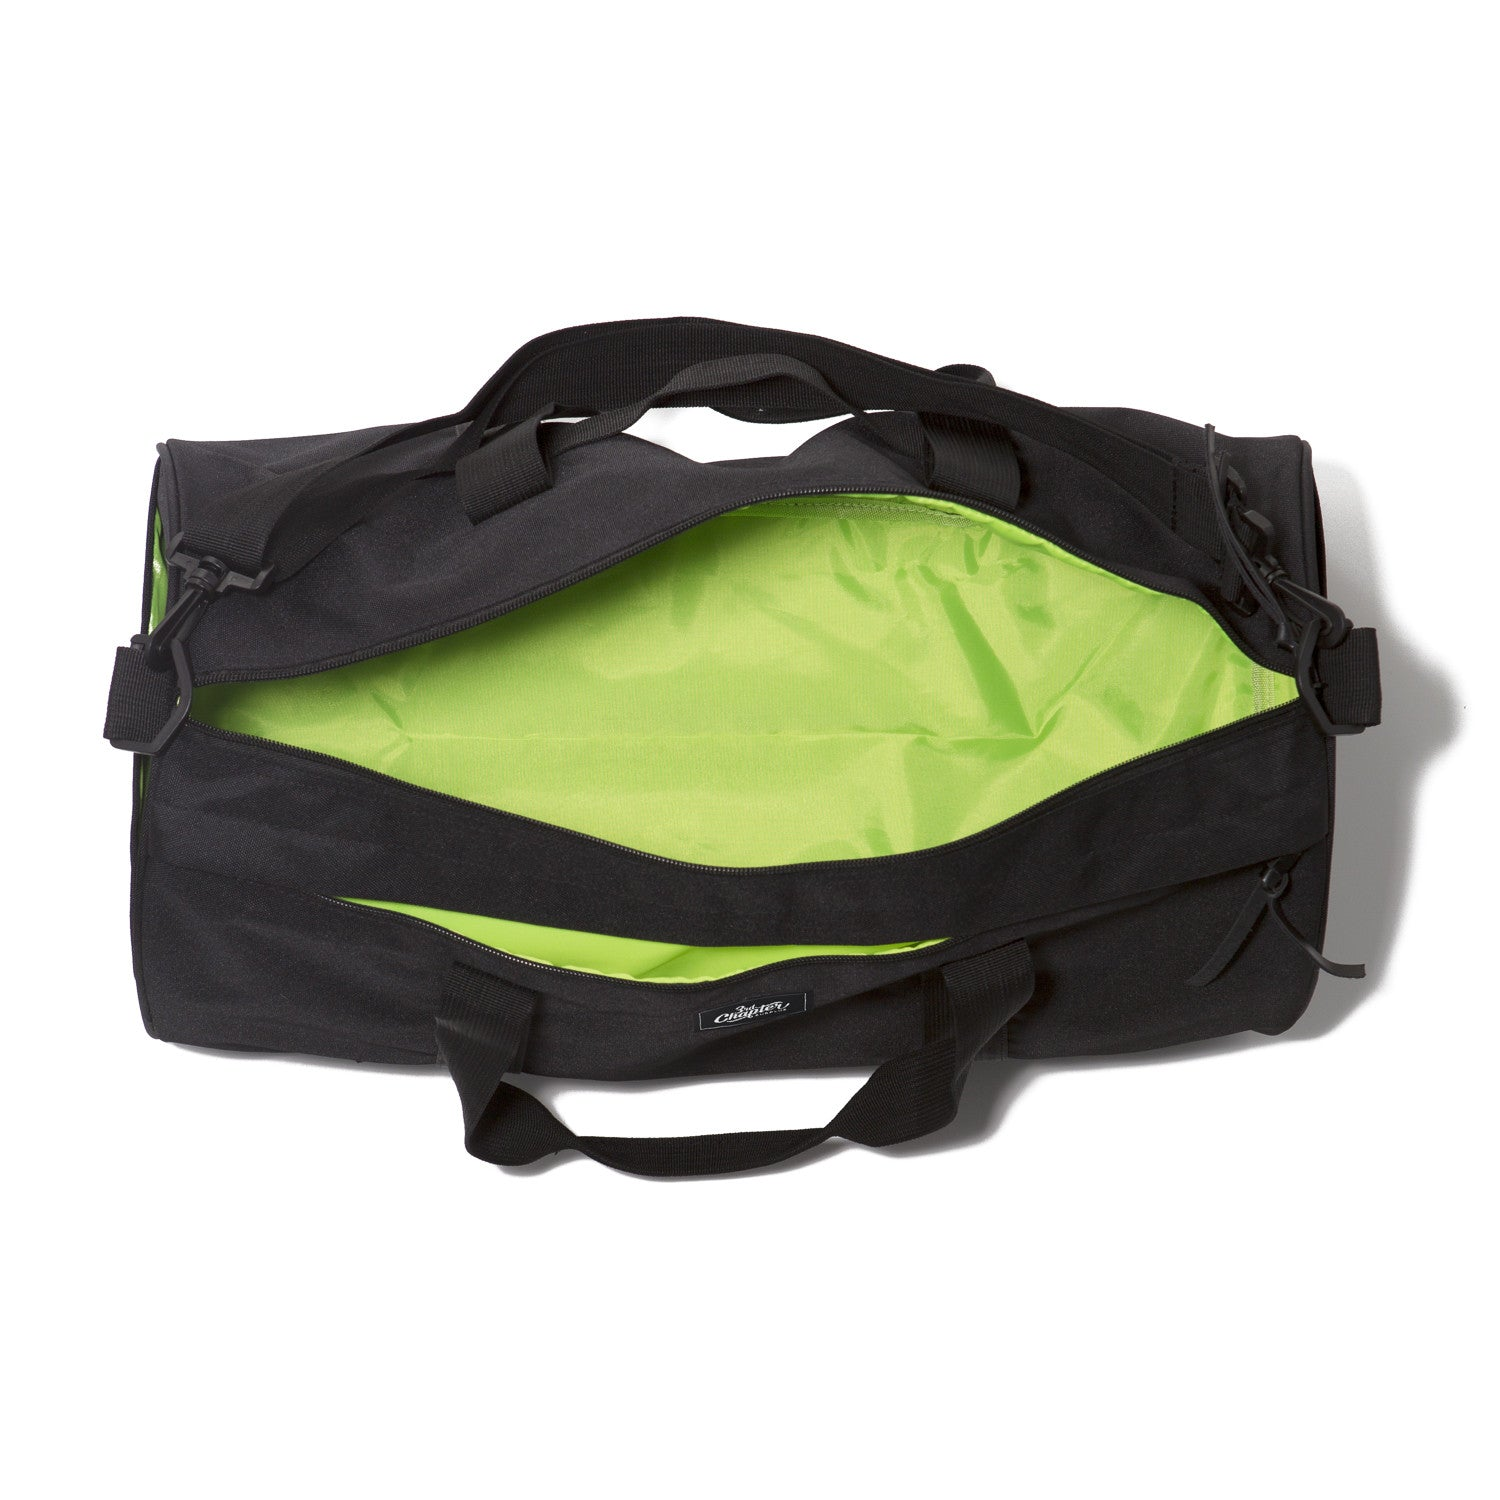 Six figure Duffel bag - 3rdchapter - 3